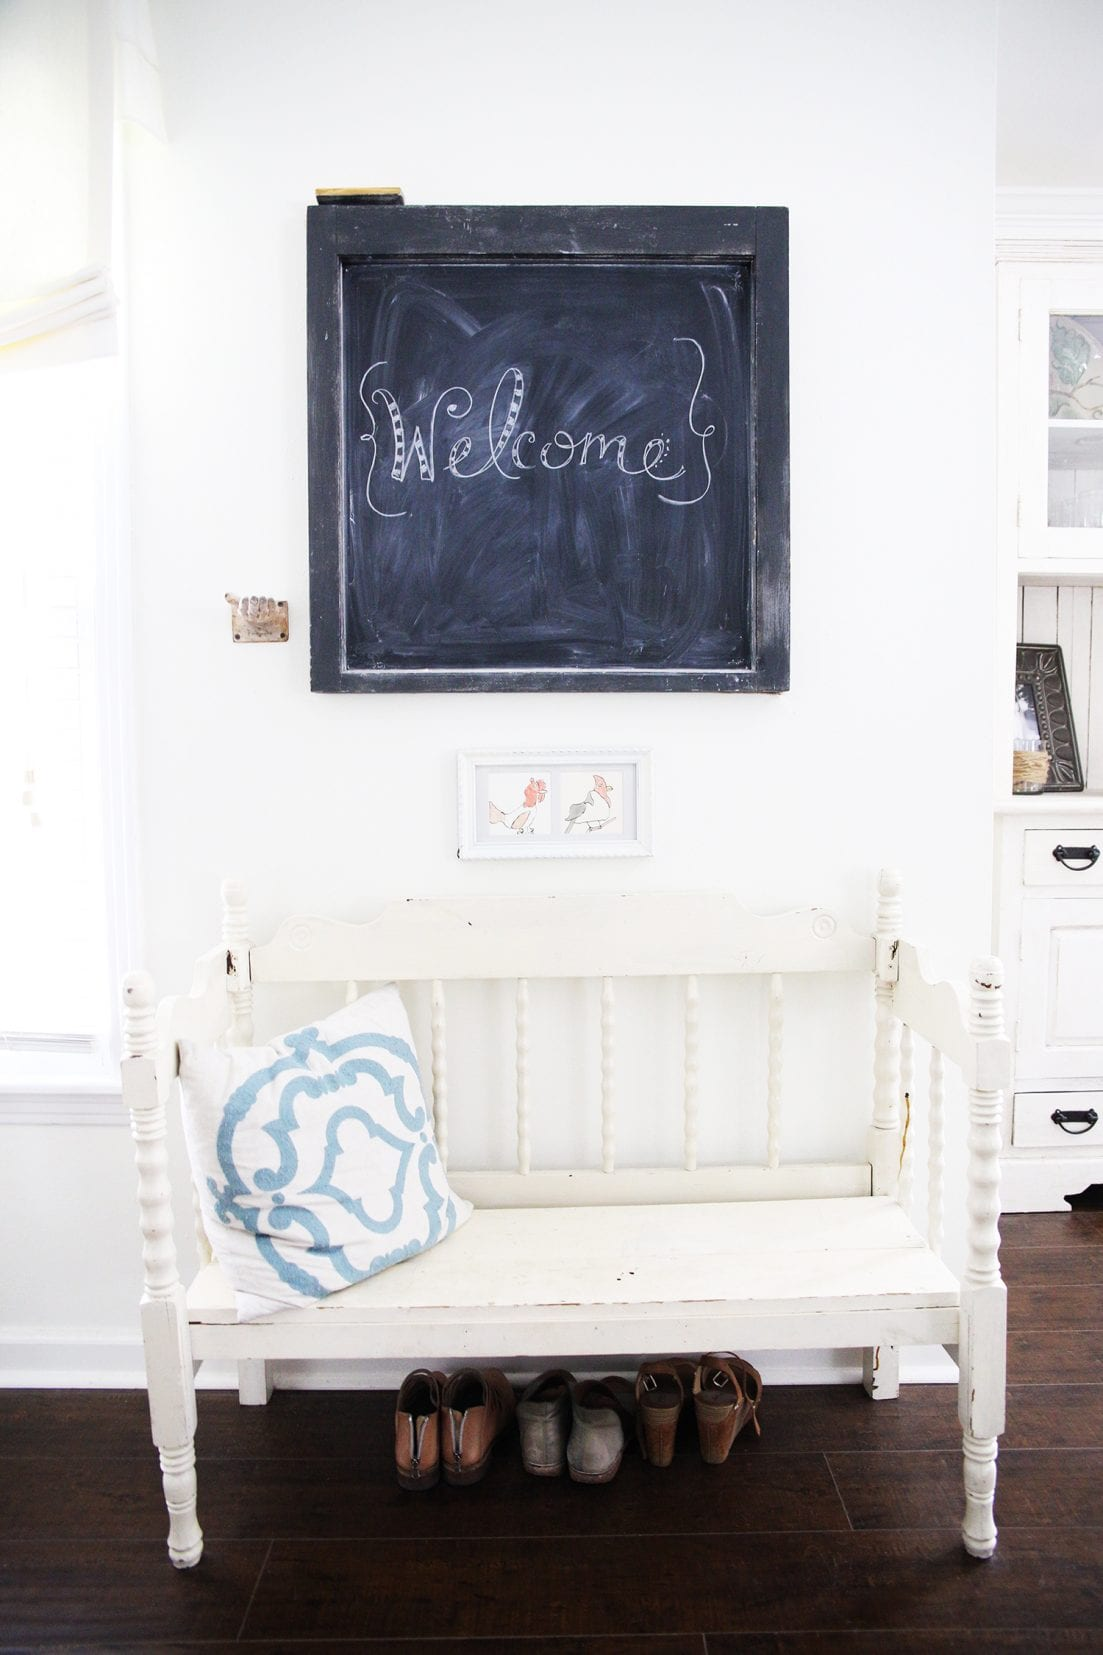 10 foolproof decorating tips - signs